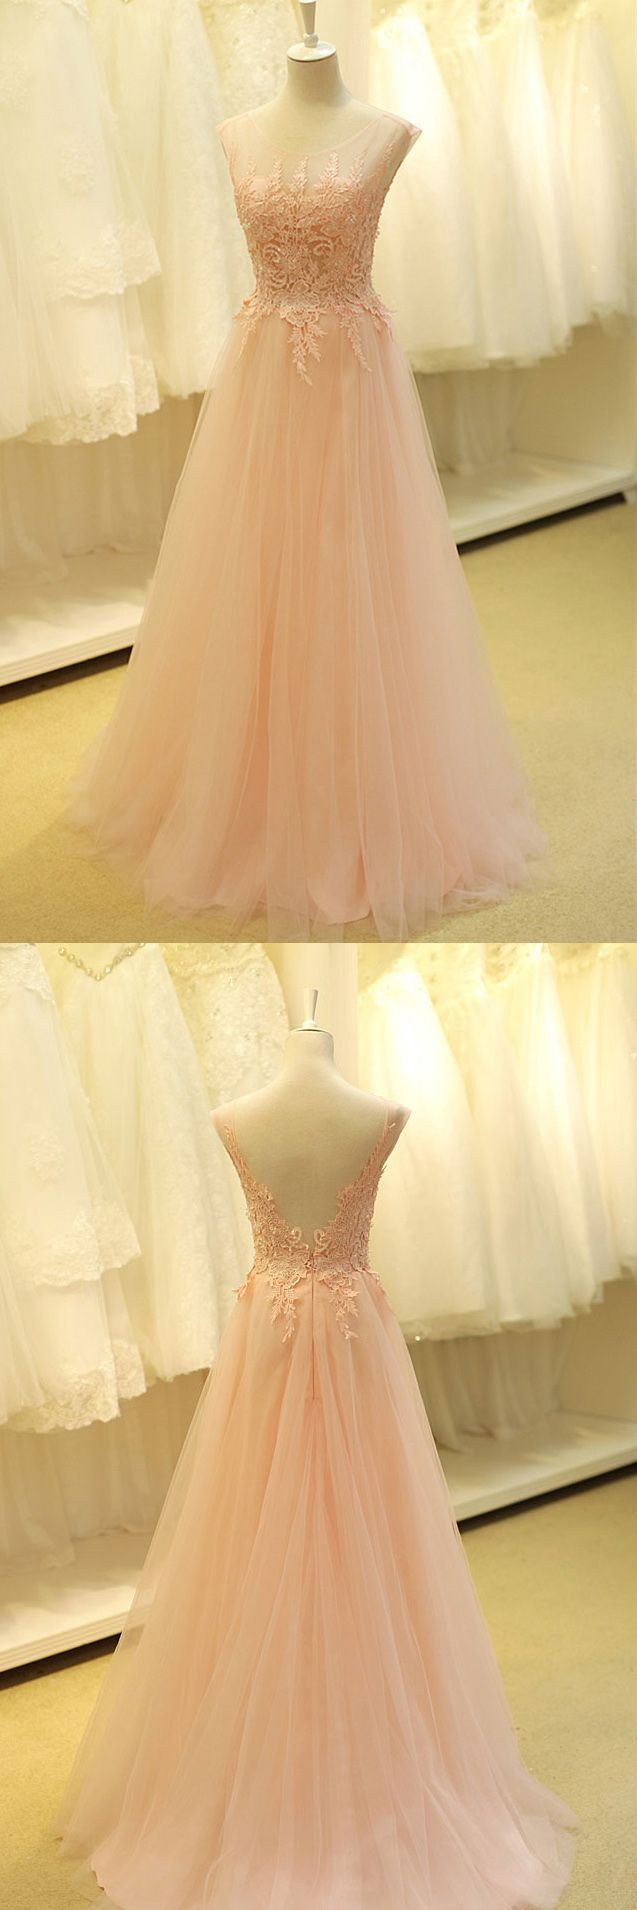 Real Made Prom Dress, Charming Formal Dresses,A-Line Appliques Evening Dresses, ST06